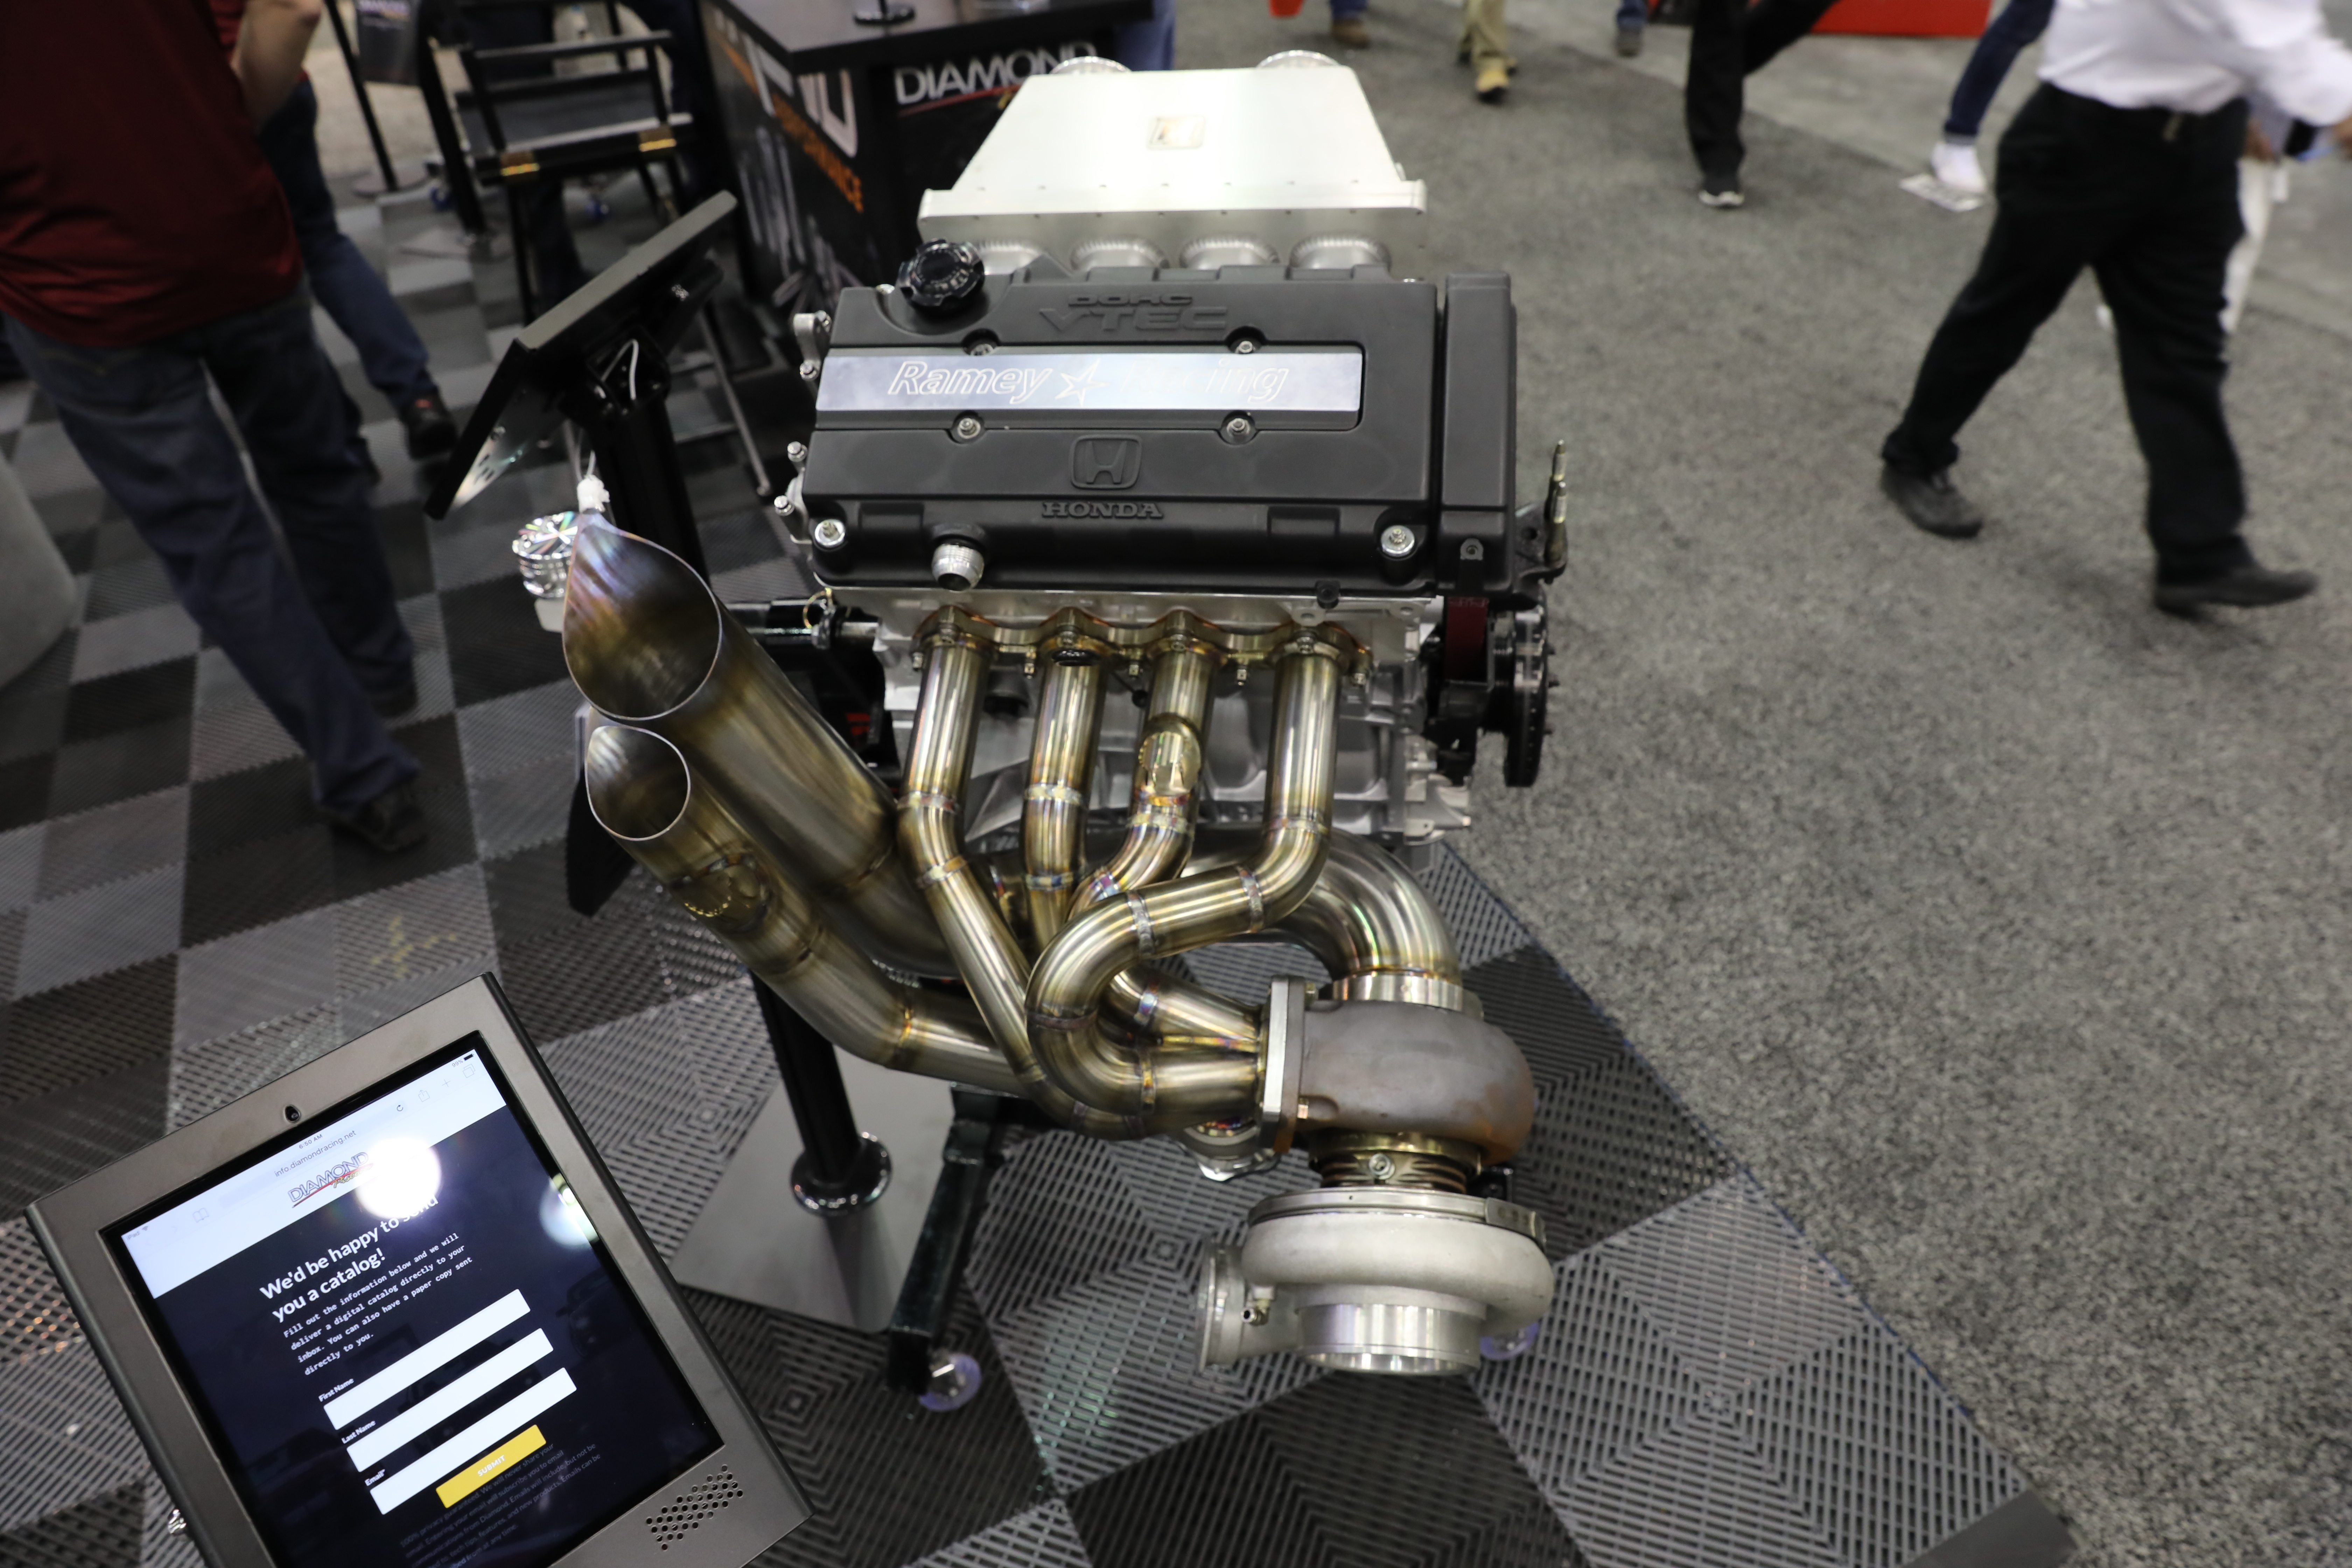 003-Diamond-engines-booth-PRI.jpg